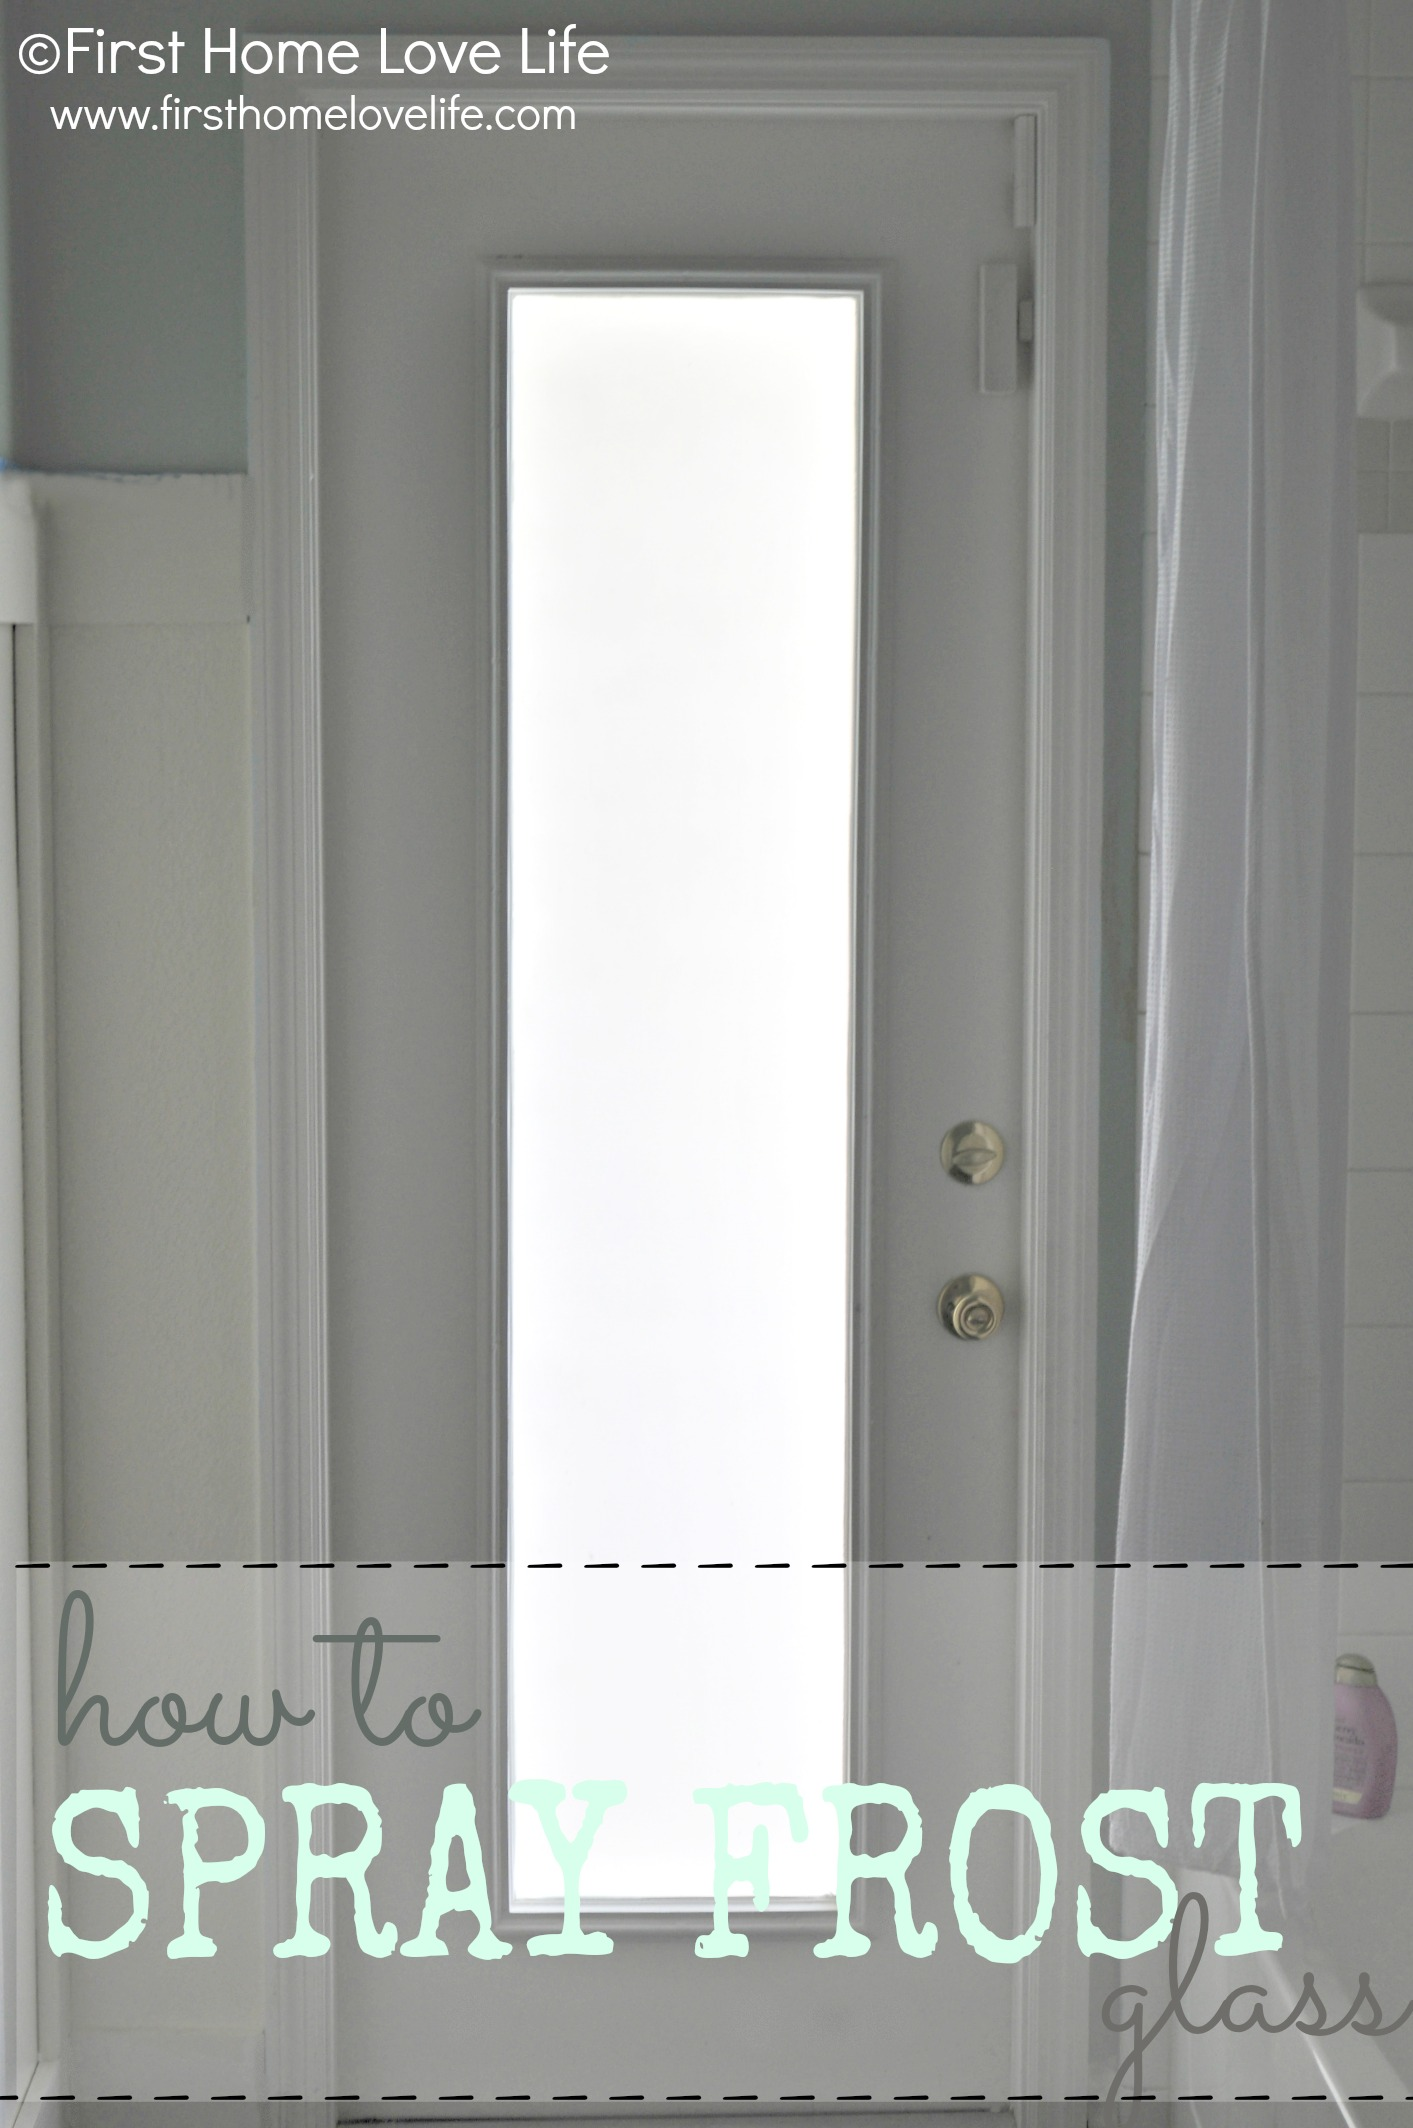 frostedglassdoor & How to Spray Frost a Glass Door for Privacy - First Home Love Life Pezcame.Com